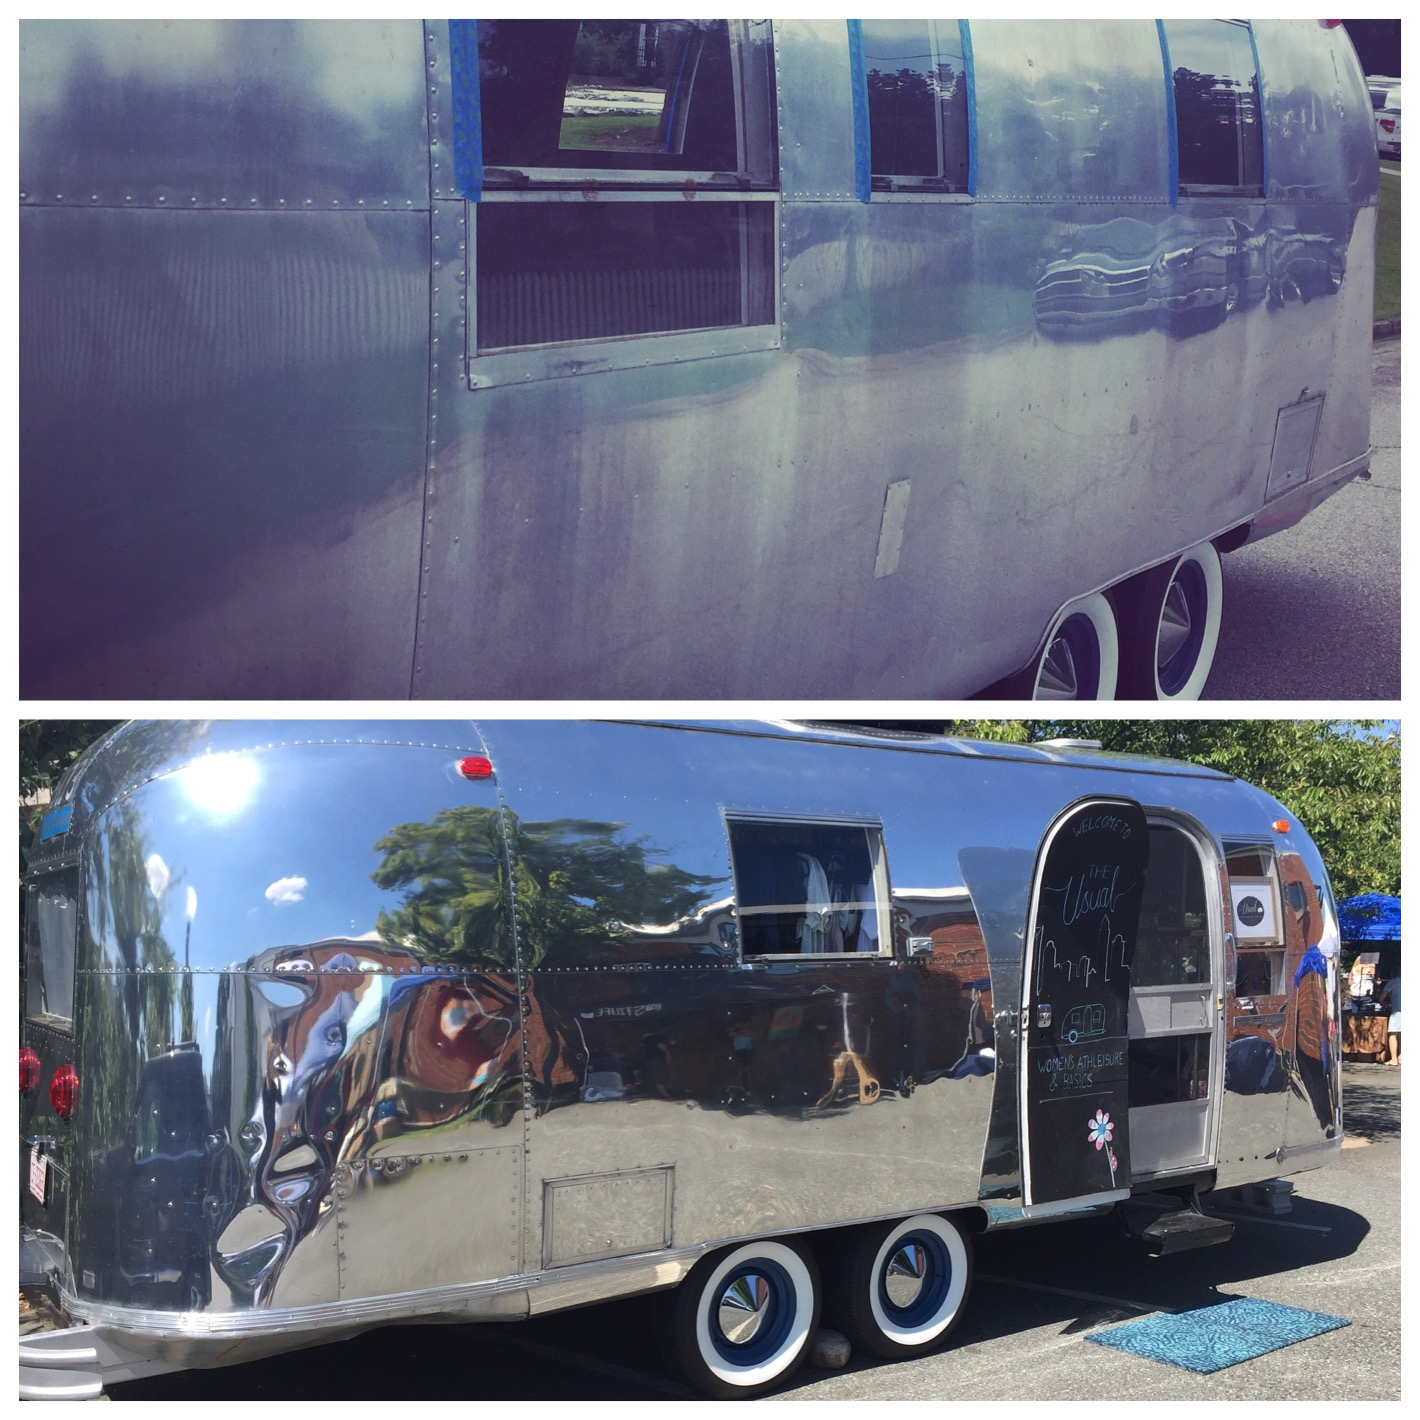 """With the inside complete it was time for Silvy D to get her shine back. After much research and discovering that the polishing would take around 180 hours, we knew this was one job we couldn't take on ourselves. So we found Tim, who we like to call """"the airstream whisperer."""" Silvy D went to Tim's airstream polishing(AKA Shine camp)and he literally turned back the hands of time. And now the true journey begins...                         """"  Life is a journey not a destination.""""  - Ralph Waldo Emerson"""